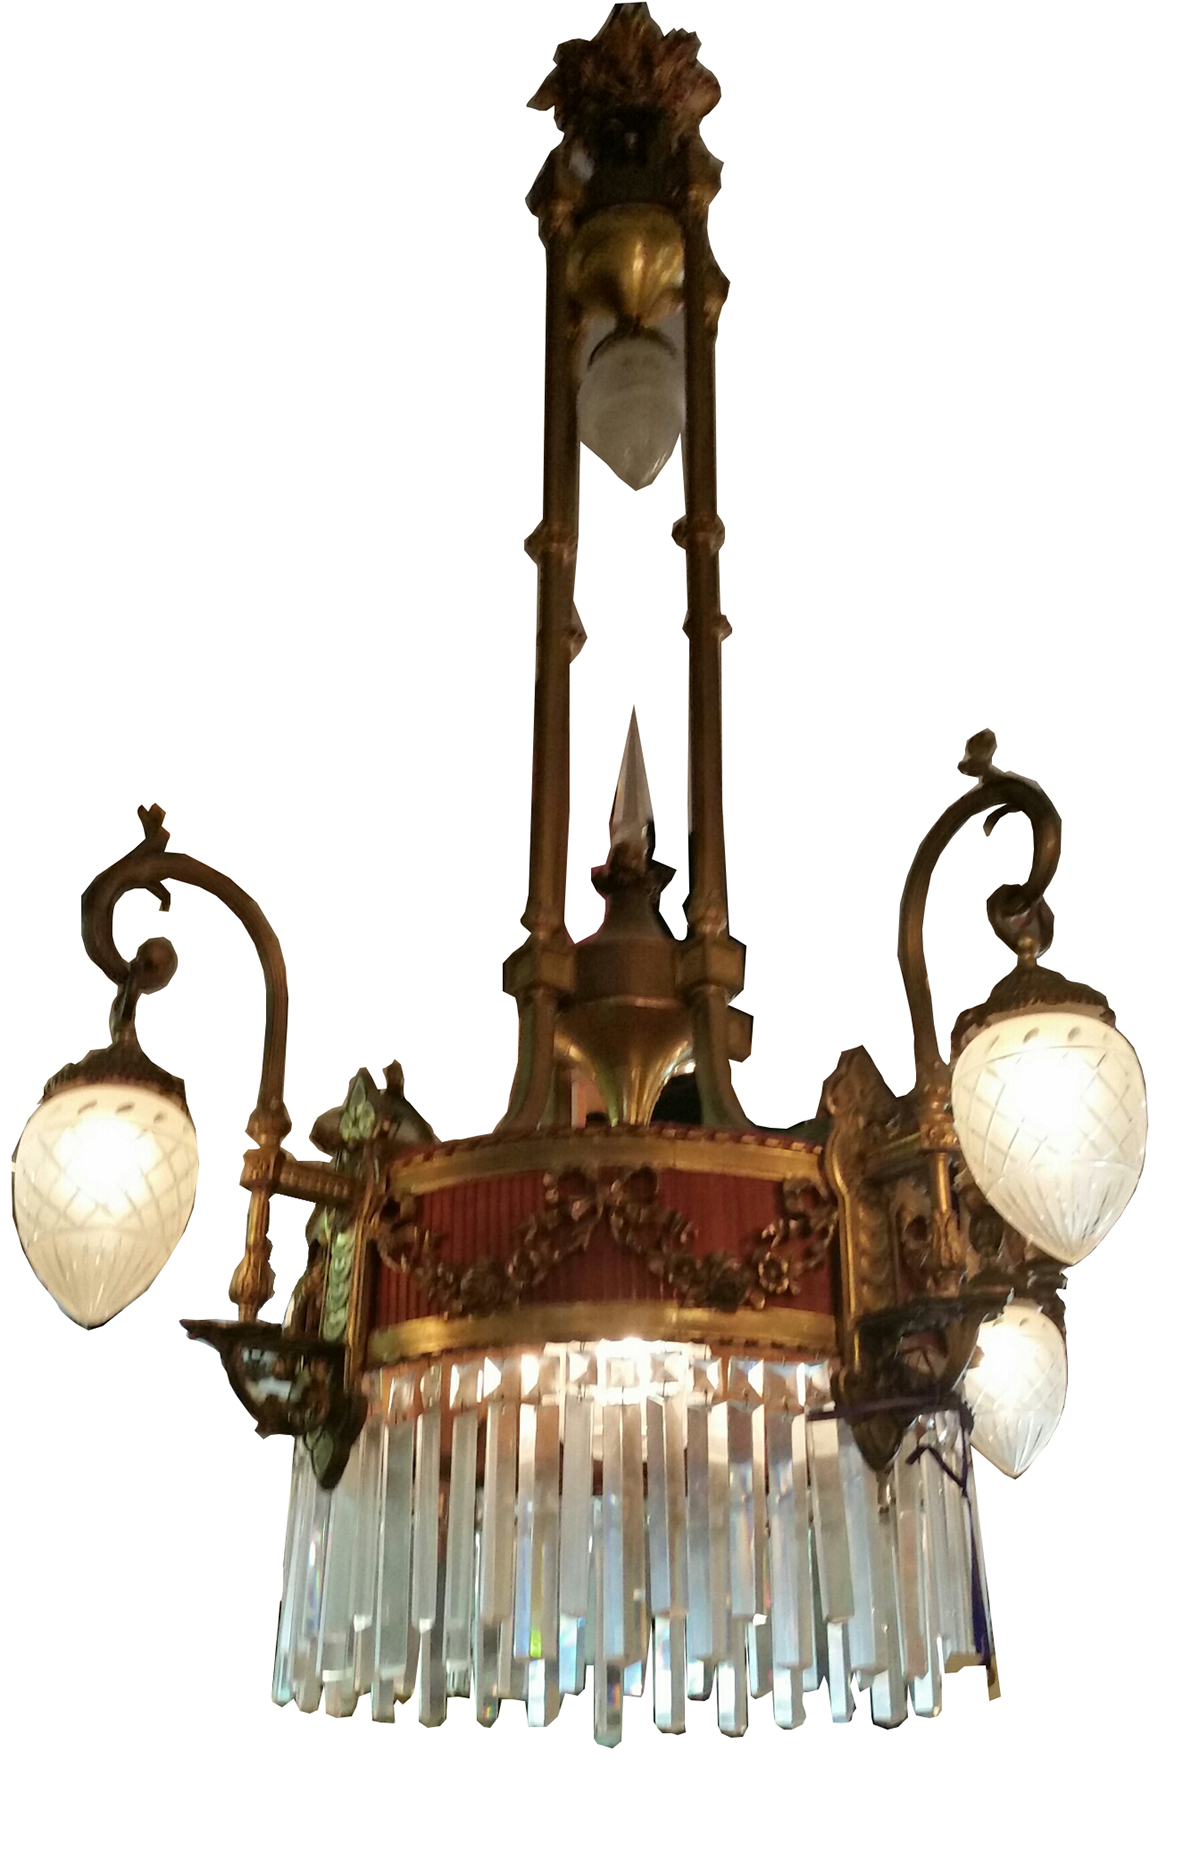 Antique brass chandelier with cut crystal bowls modernism antique brass chandelier with cut crystal bowls mozeypictures Images